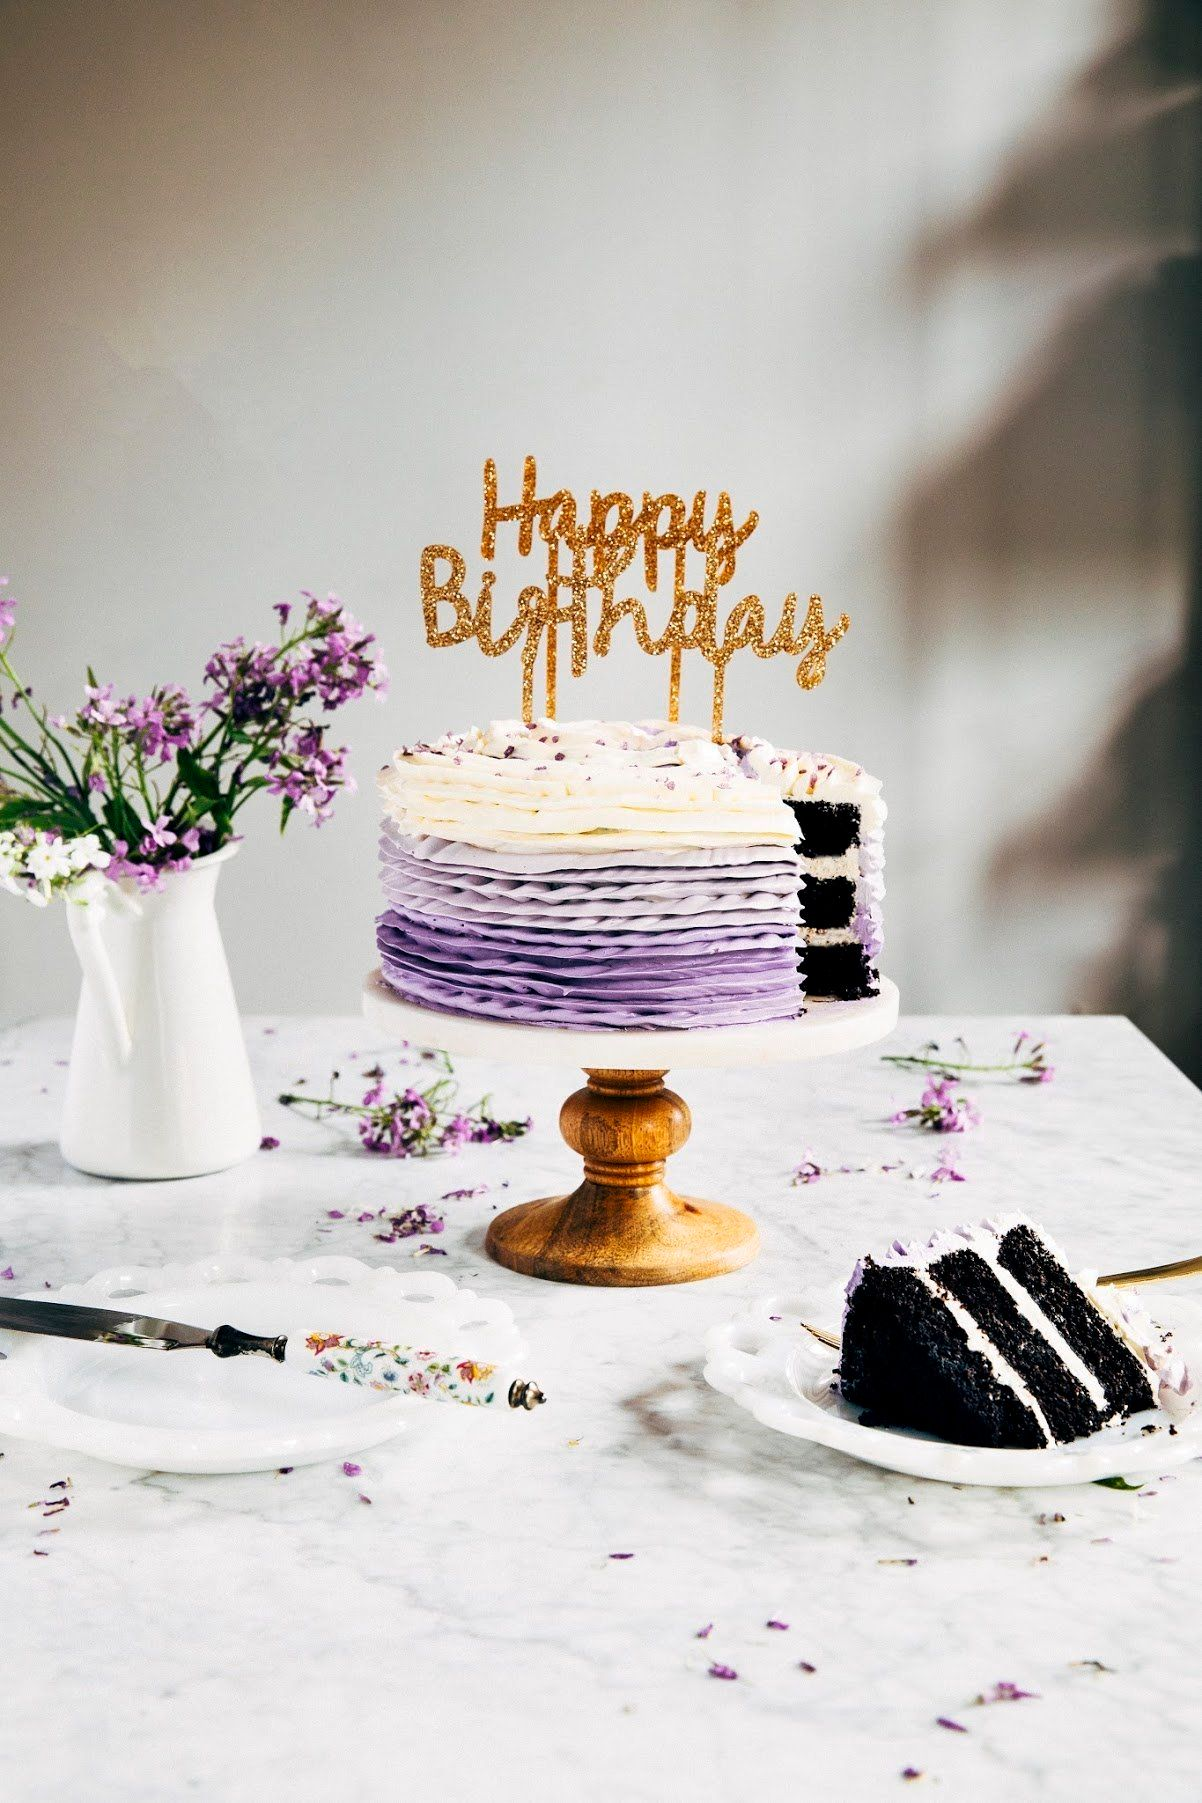 The Best Birthday Cake Recipes You'll Ever Find On The